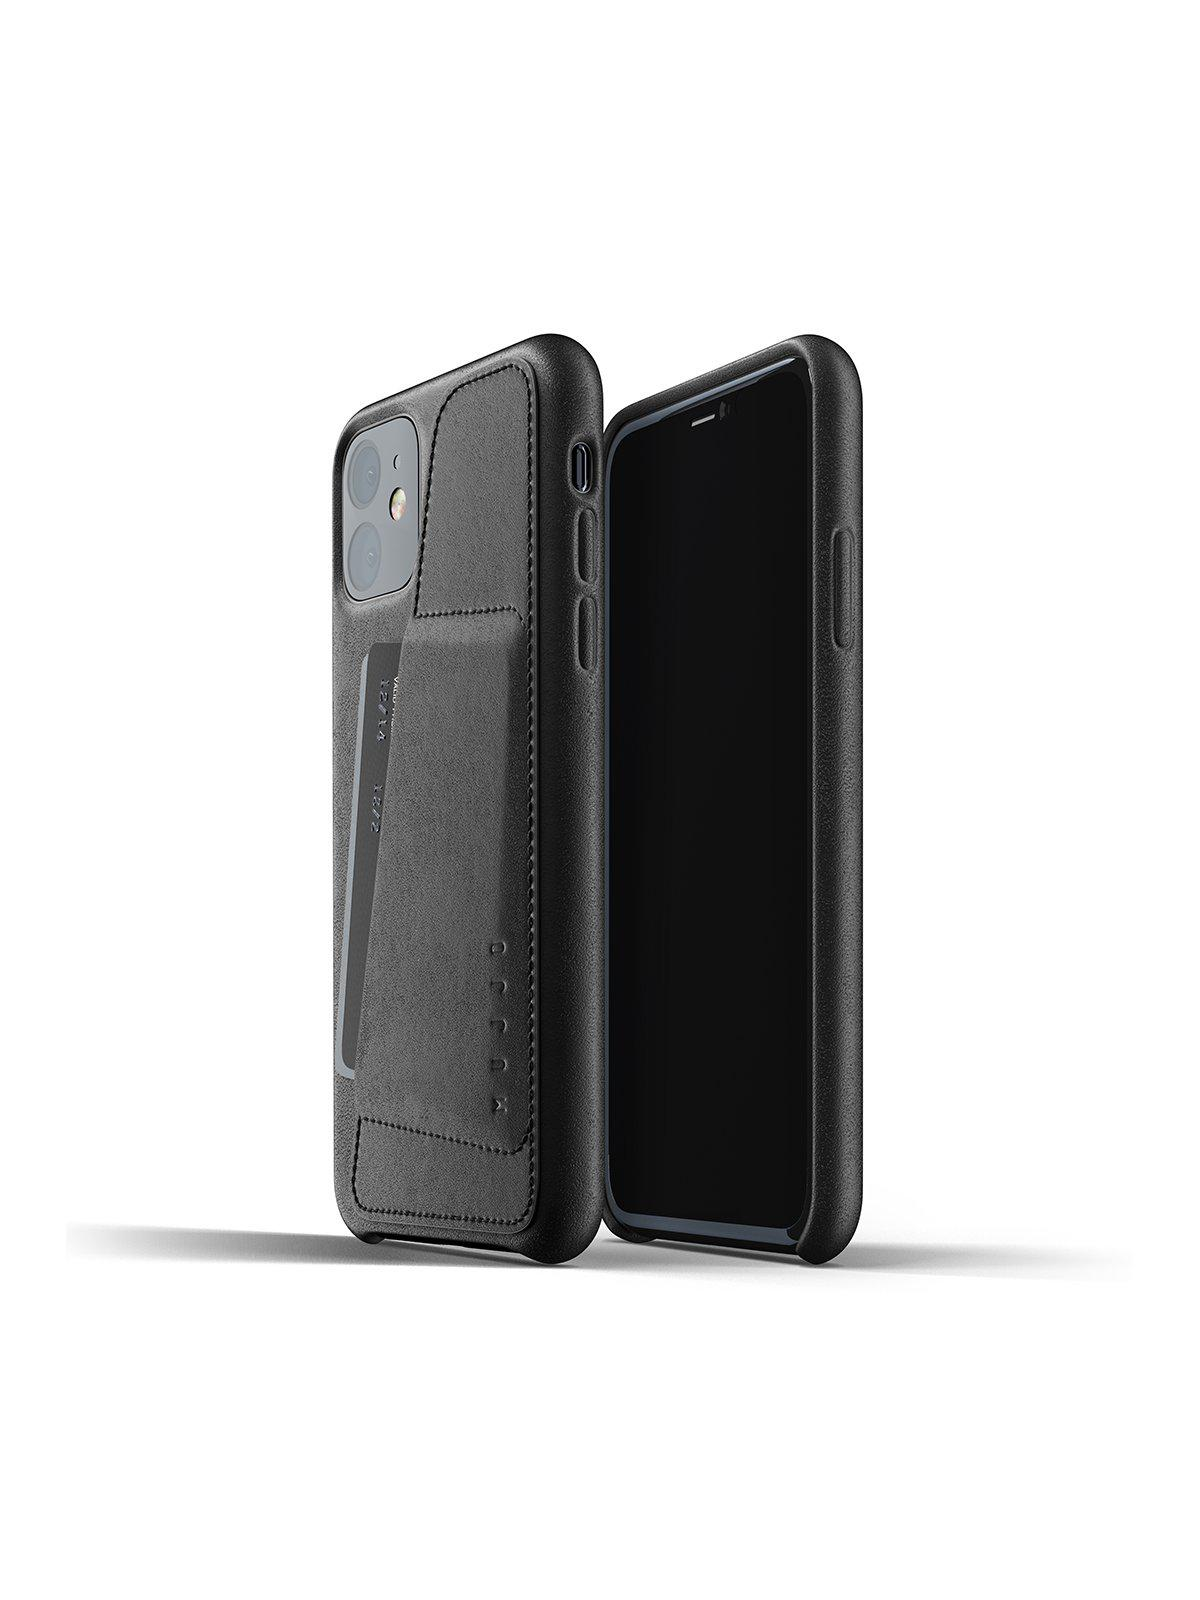 Mujjo Full Leather Wallet Case for iPhone 11 Black - MORE by Morello Indonesia